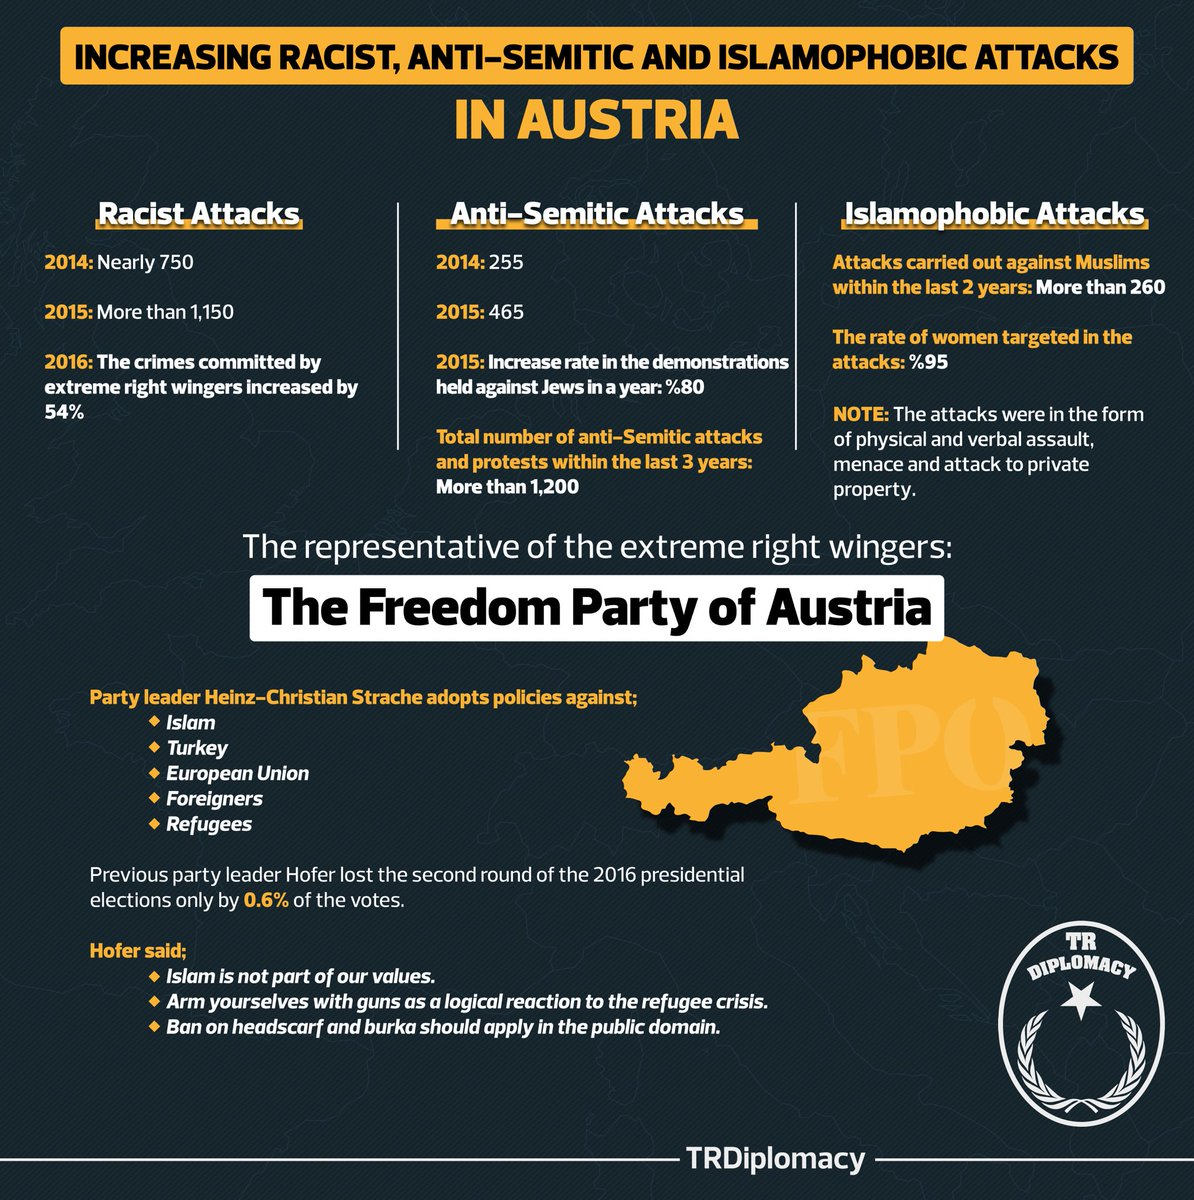 Racist, anti-Semitic and Islamophobic attacks in Austria puts European democracy at stake.